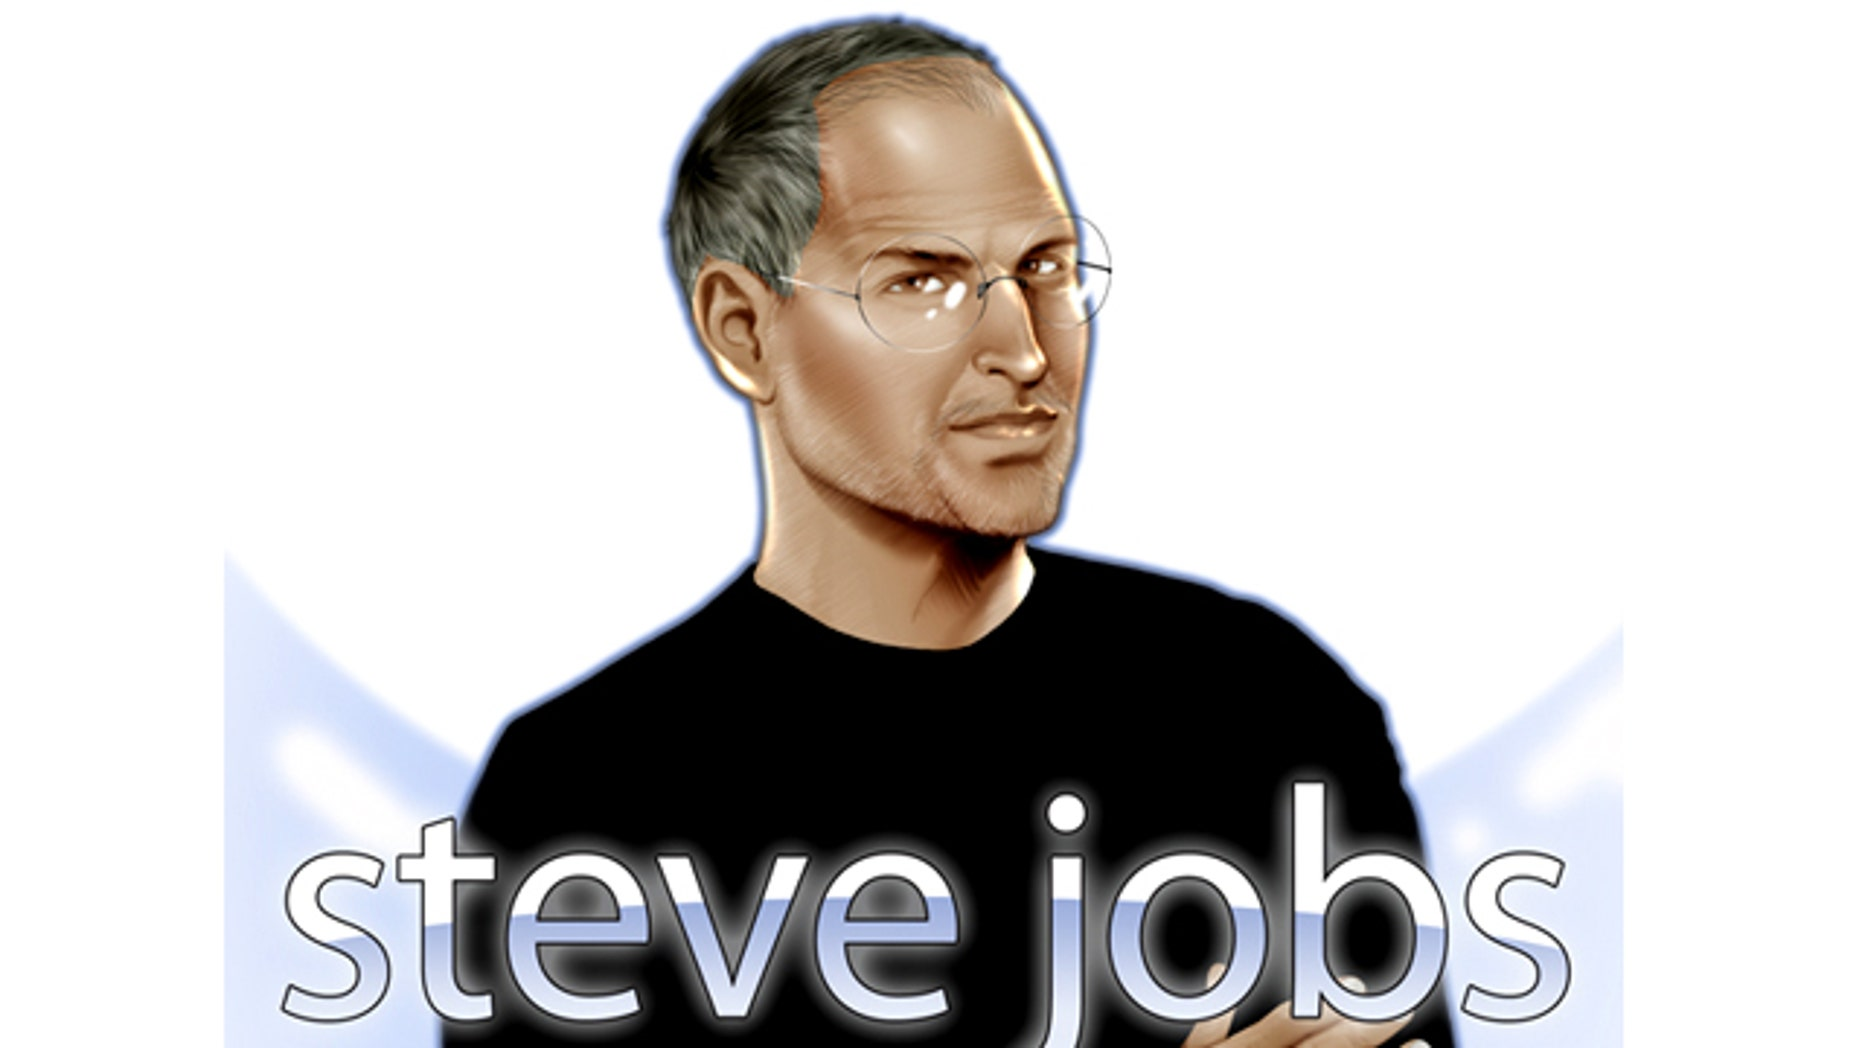 In this comic book cover released by Bluewater Productions Inc., Apple co-founder Steve Jobs is shown on the cover of the Bluewater Comics biography issue.  The one-shot issue, expected in August, was created, in part, because of the sales of its last high-tech profile subject, Facebook founder Mark Zuckerberg.